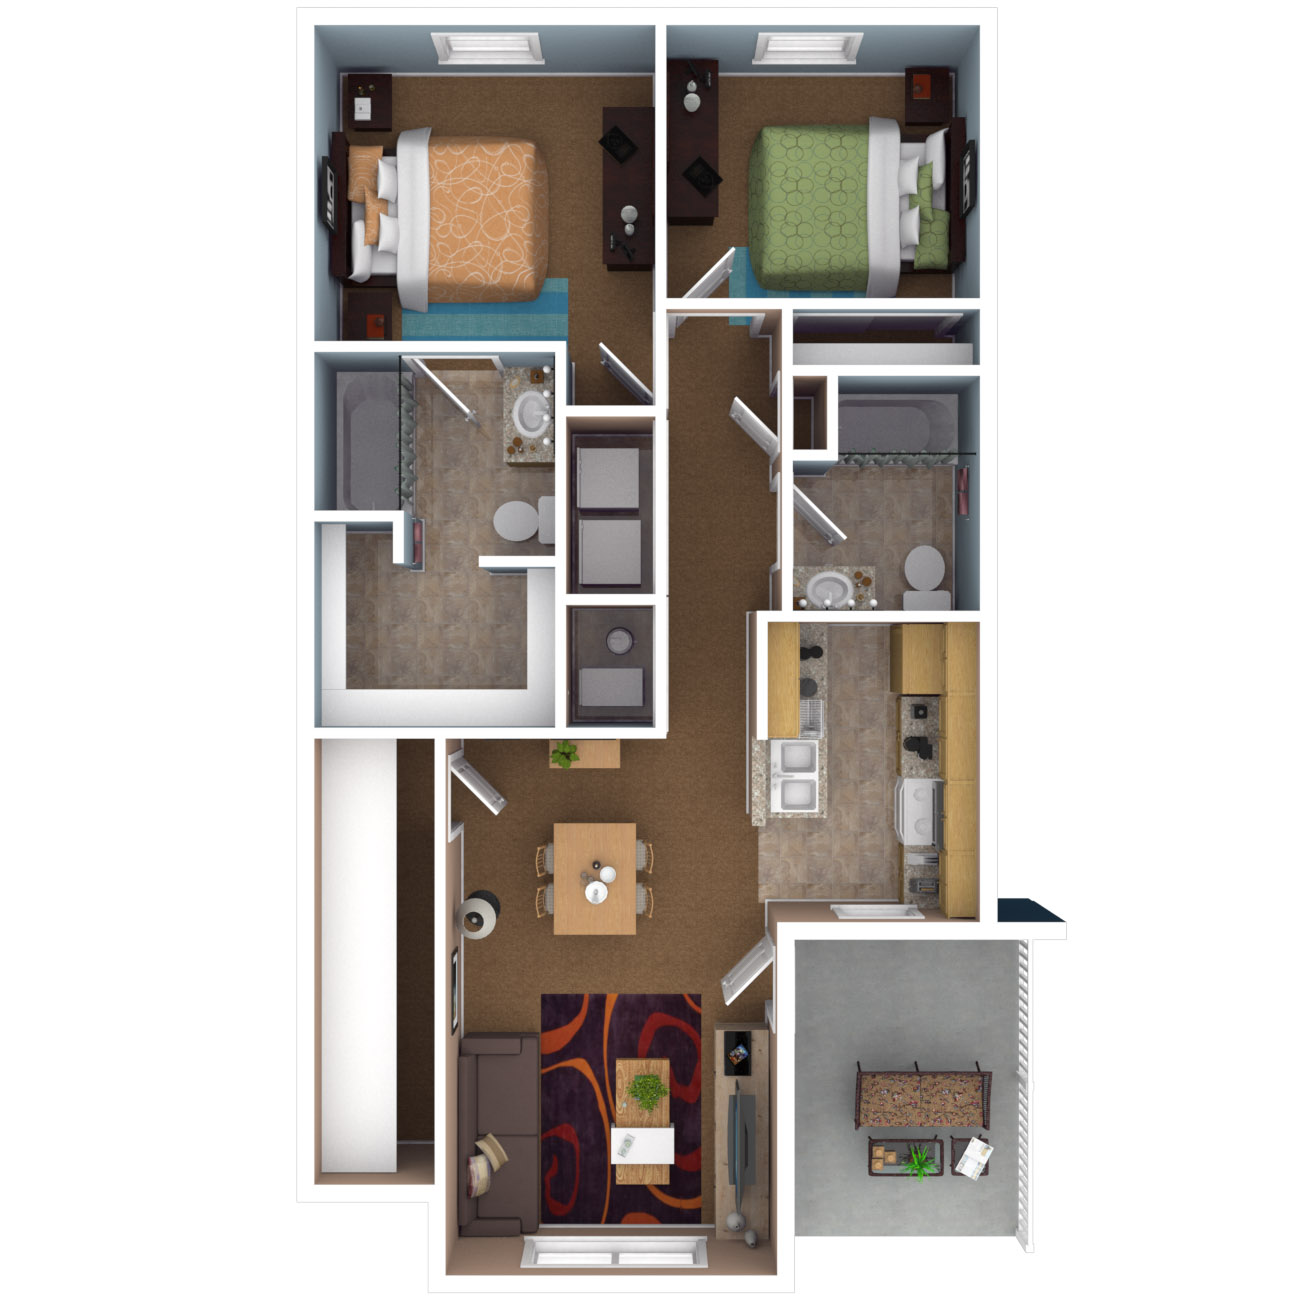 3 Bedroom Floor Plans. 2 Bedroom 3 Floor Plans